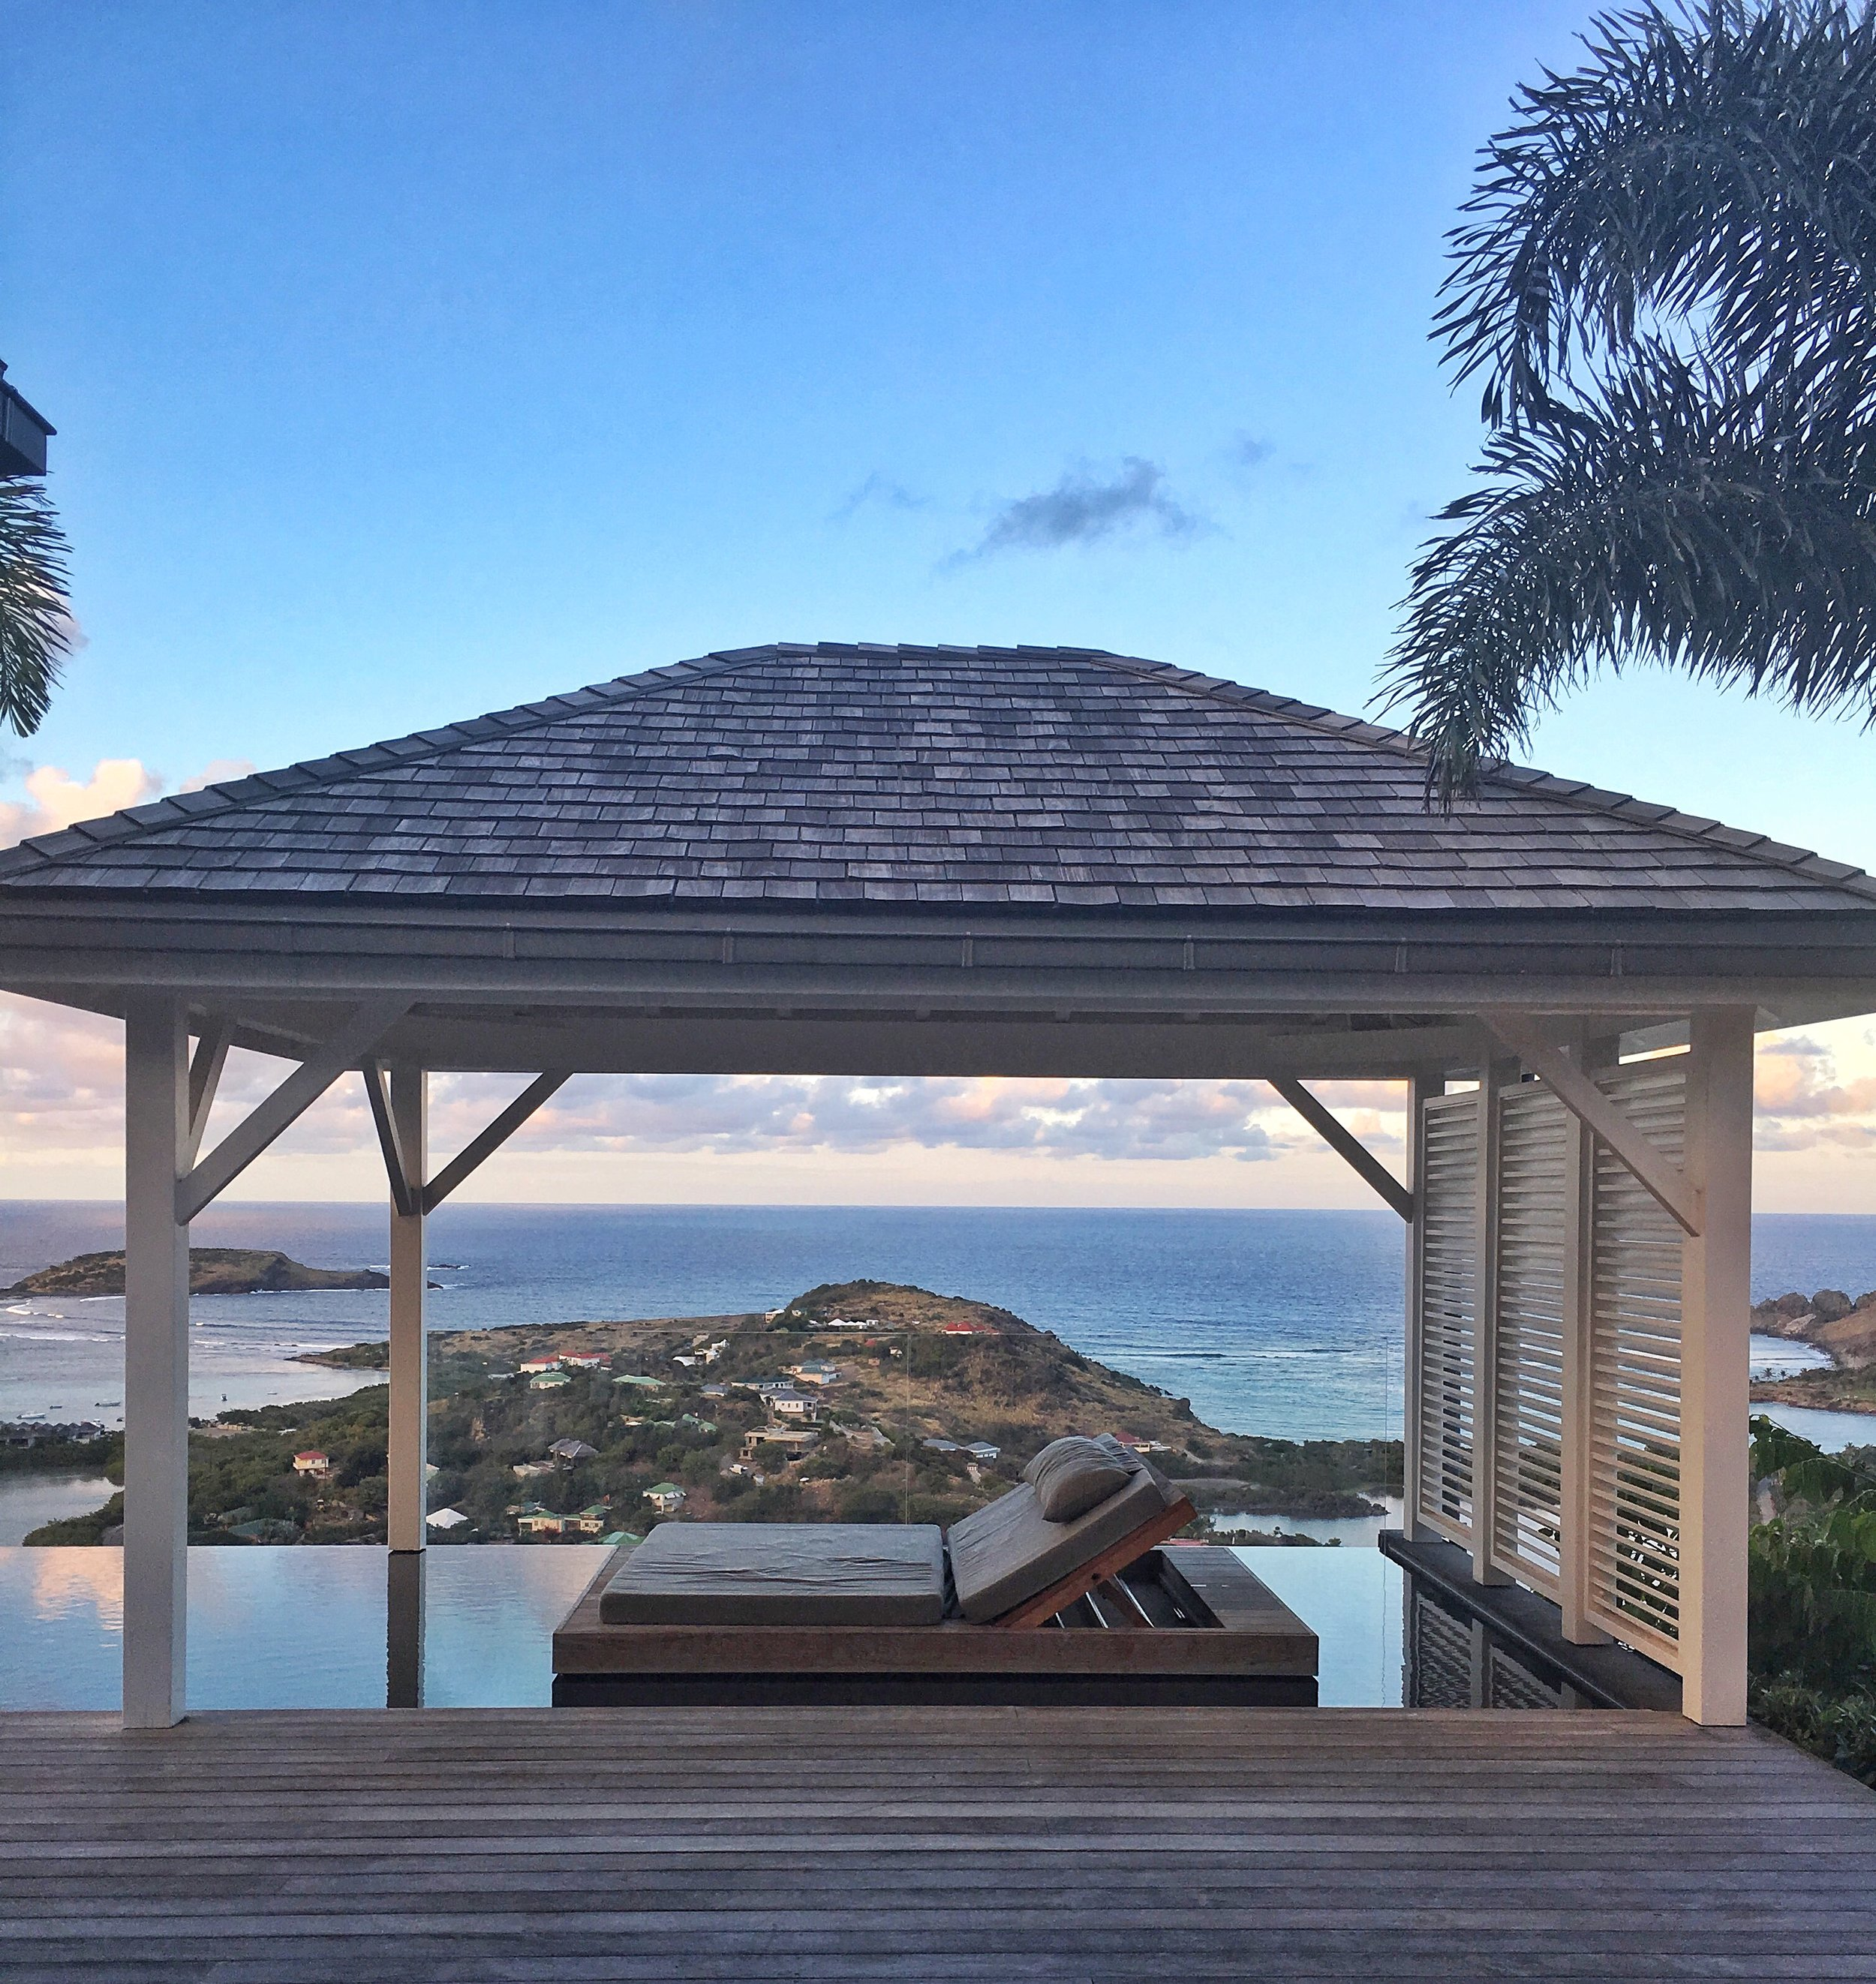 Aminata is the brains behind the innovative wellness programming at the Eden Rock St. Barth